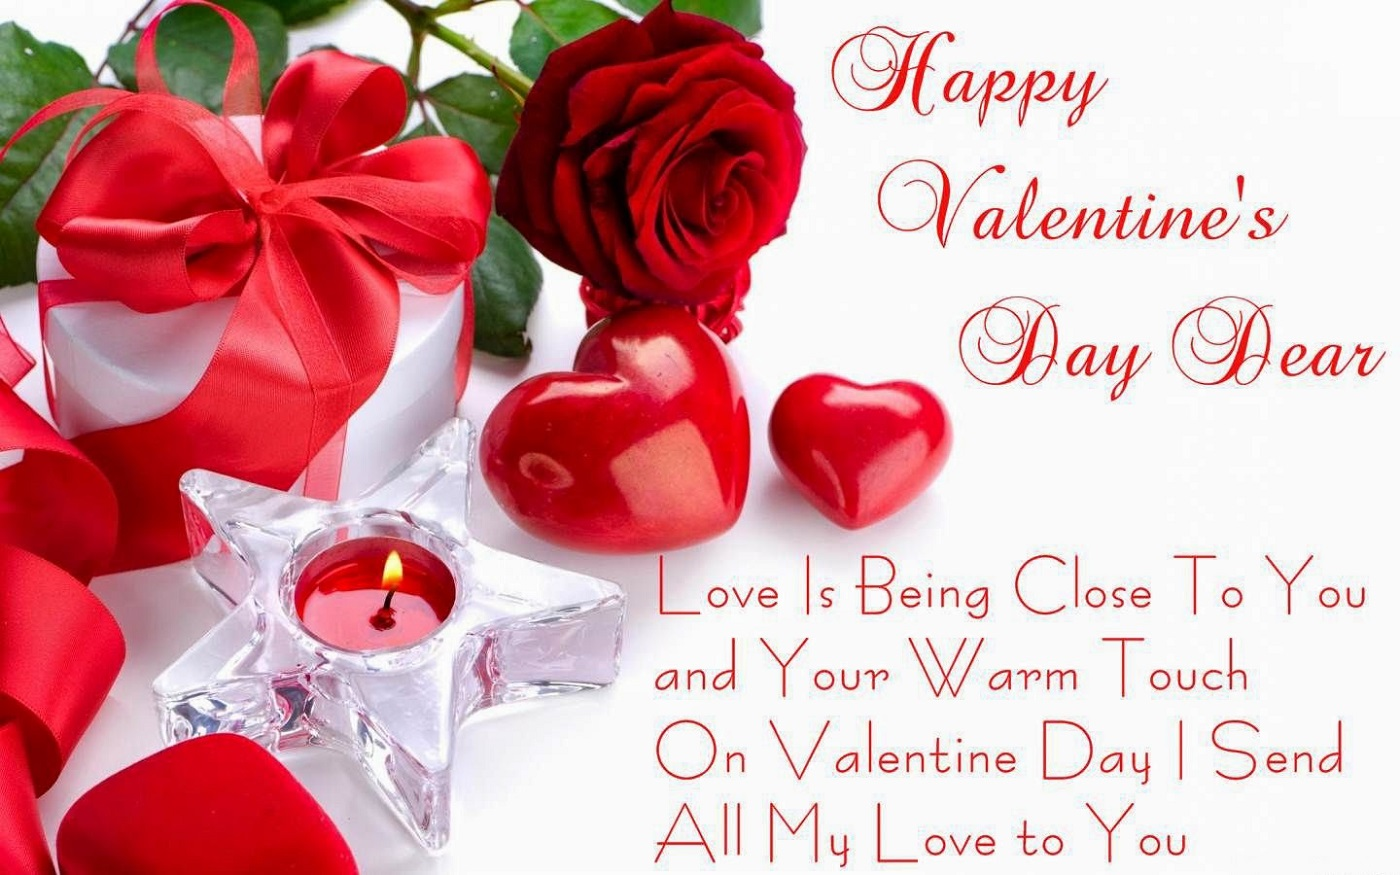 belated happy valentines day 2017 wishes - Valentines Text Messages